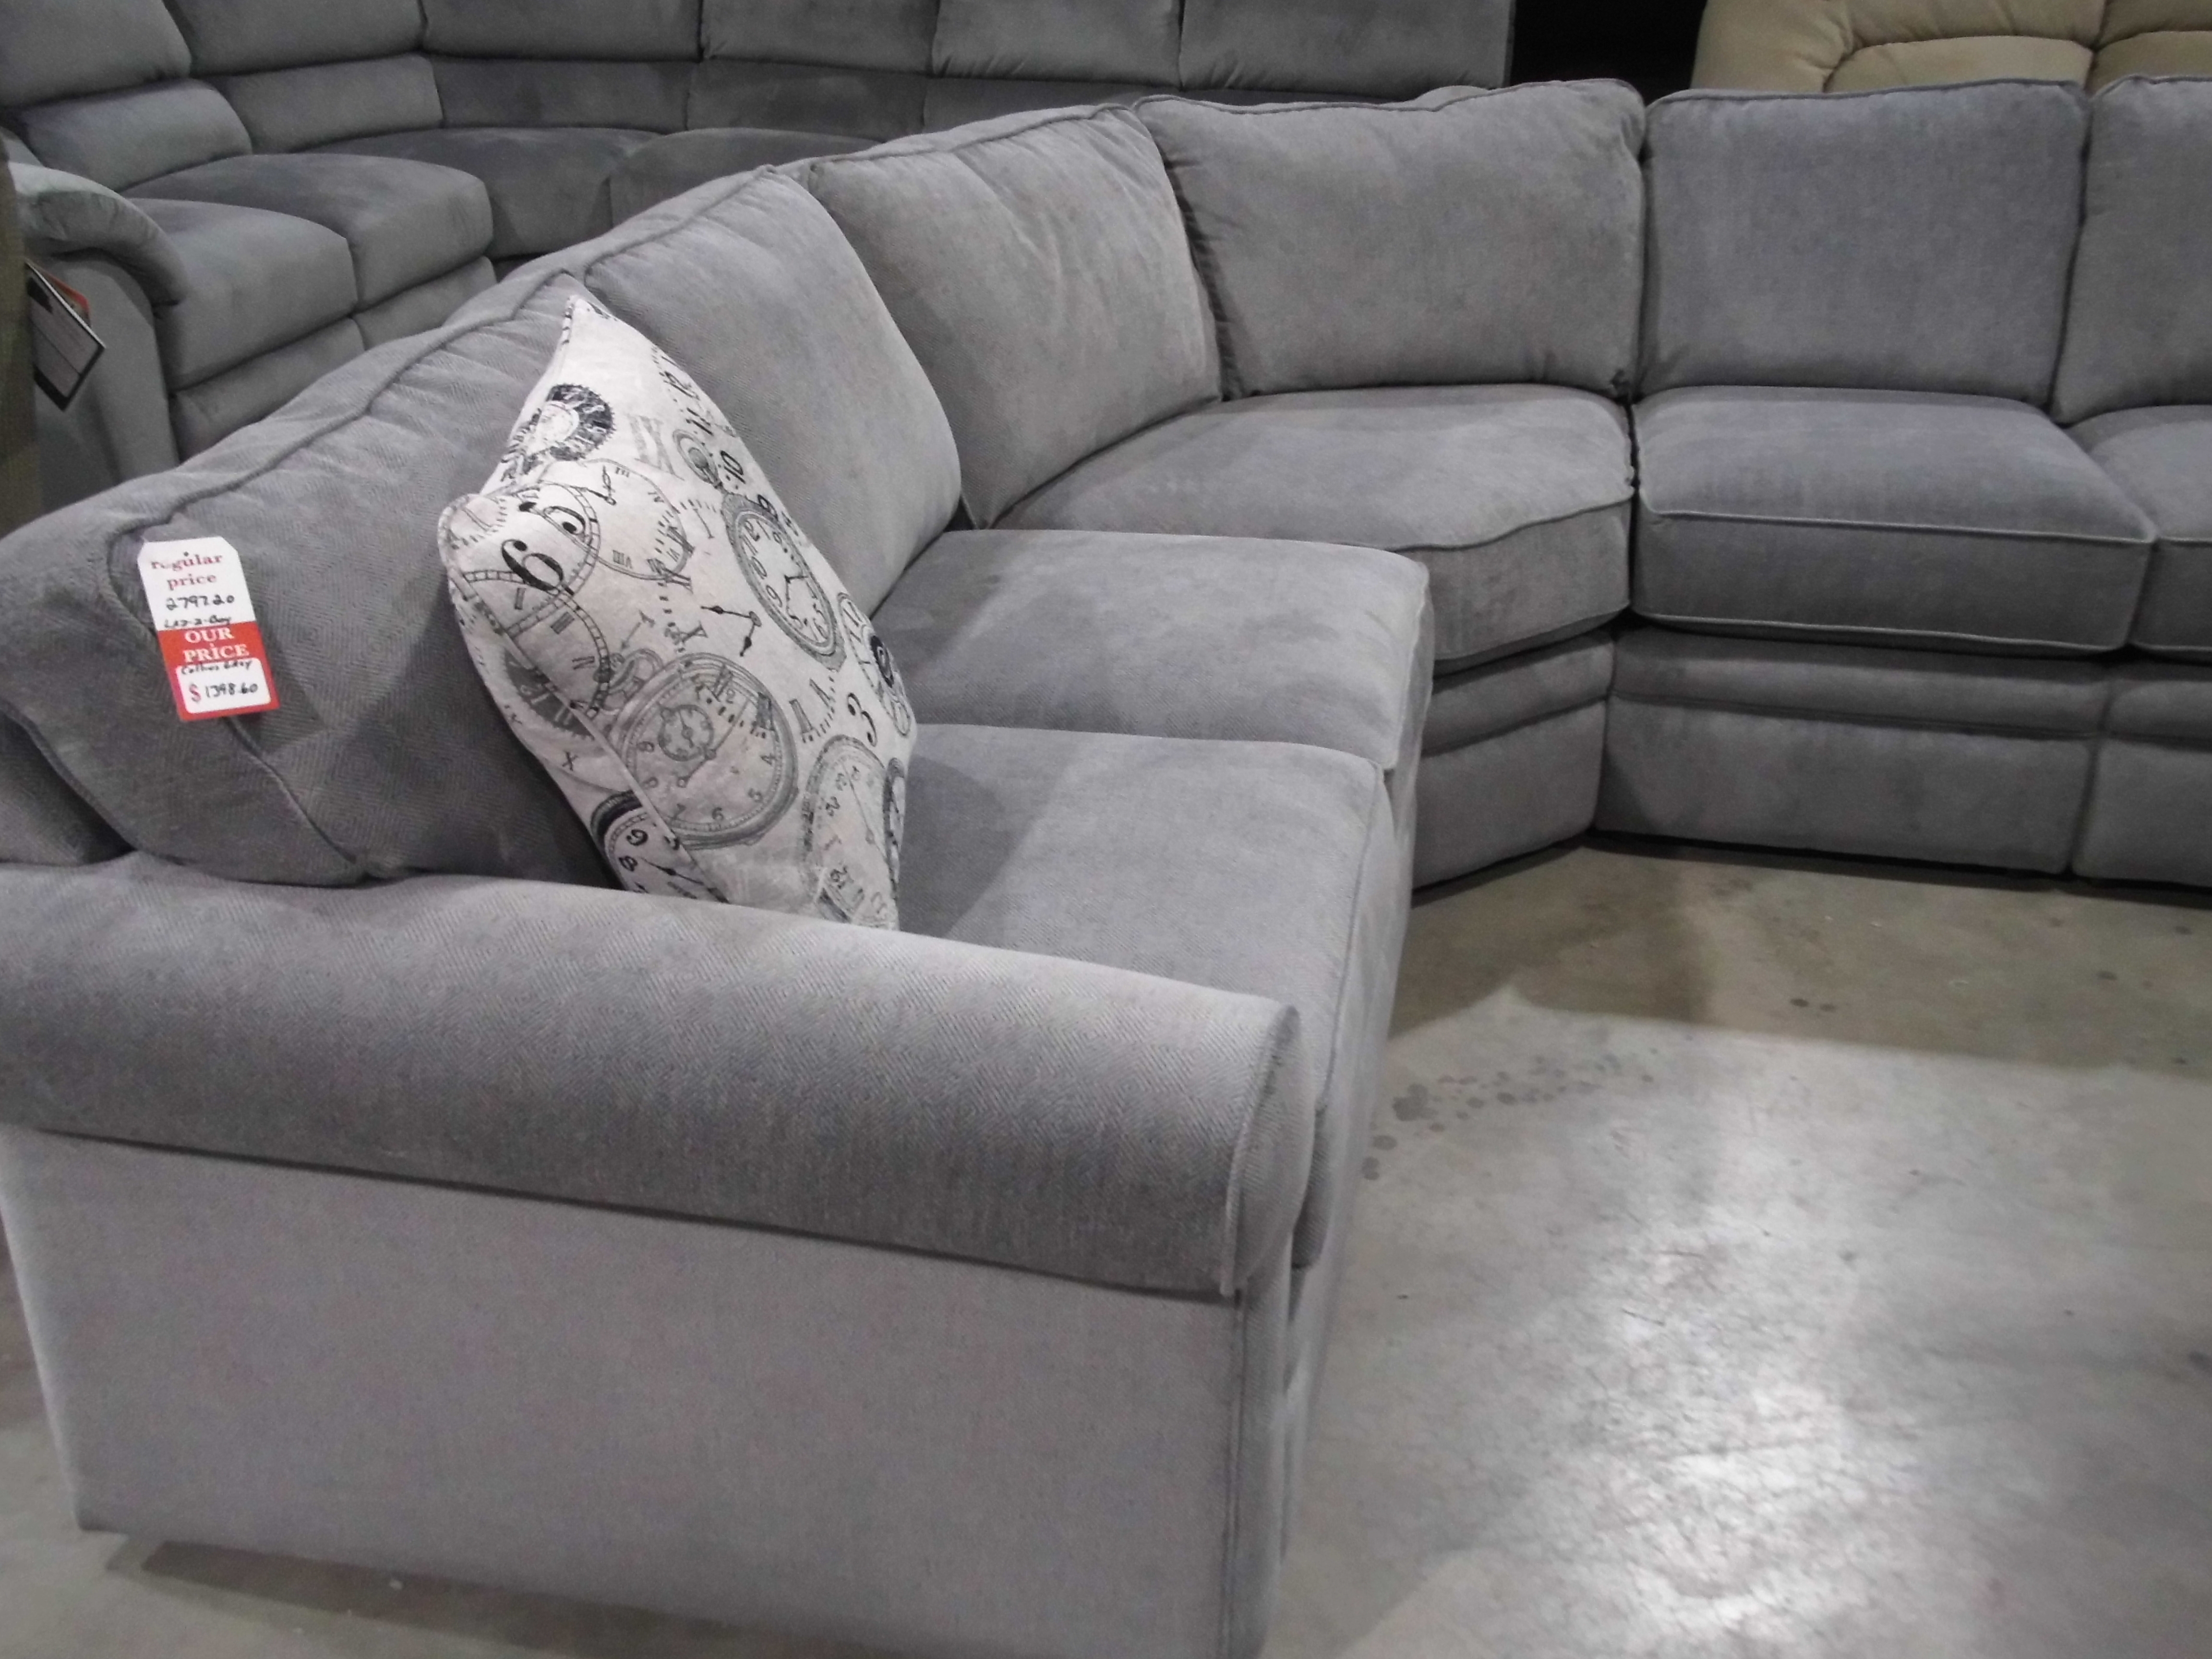 Lazy Boy Sectional Sleeper Sofa – Nrhcares Inside La Z Boy Sectional Sofas (View 10 of 10)